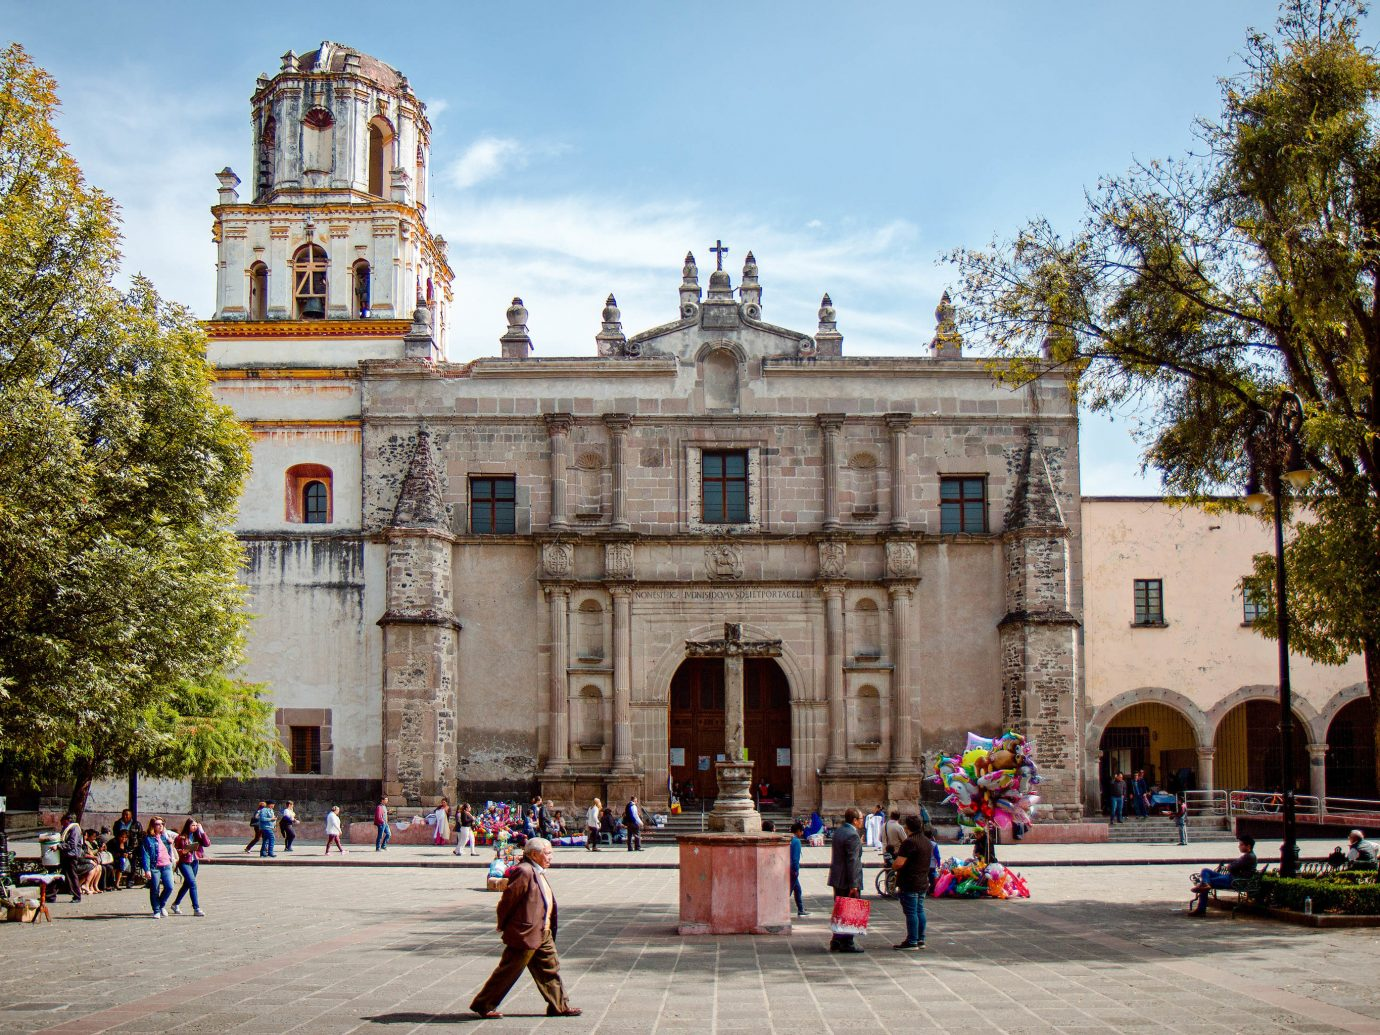 Mexico City Trip Ideas tree outdoor sky road plaza landmark town square Town building City tourist attraction palace cathedral Church basilica people place of worship tourism metropolitan area facade estate metropolis plant abbey stone square government building